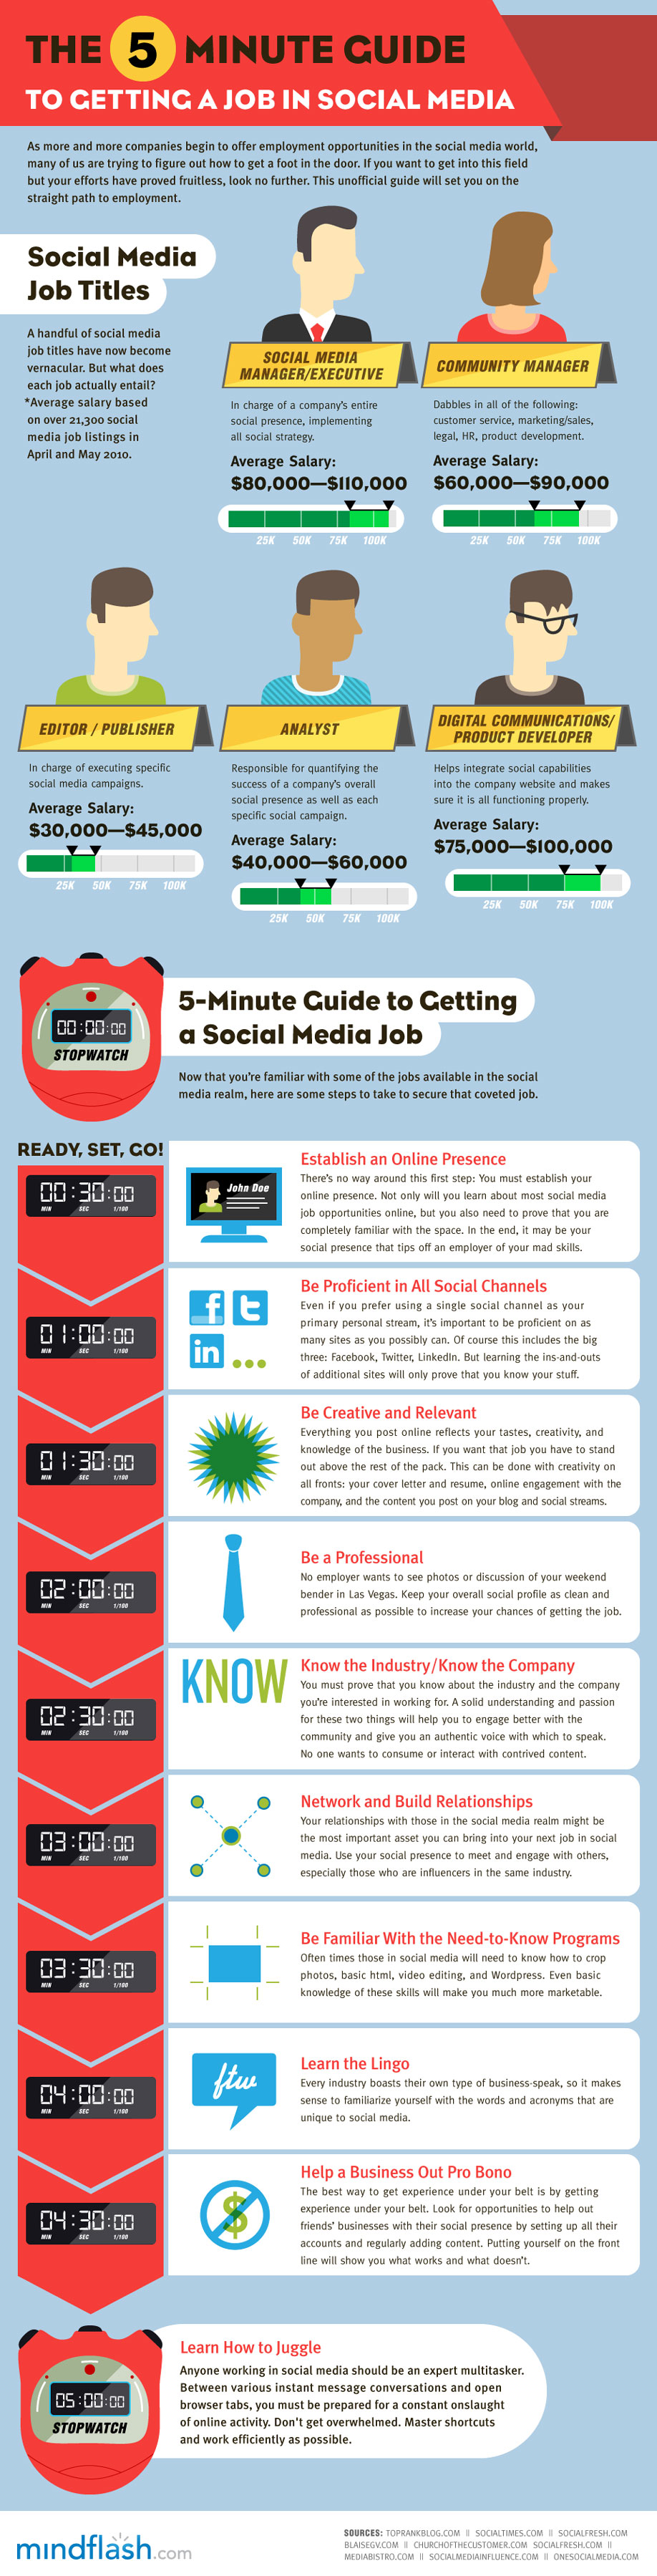 Social media 5 Get A Job In Social Media In 5 Minutes [INFOGRAPHIC]